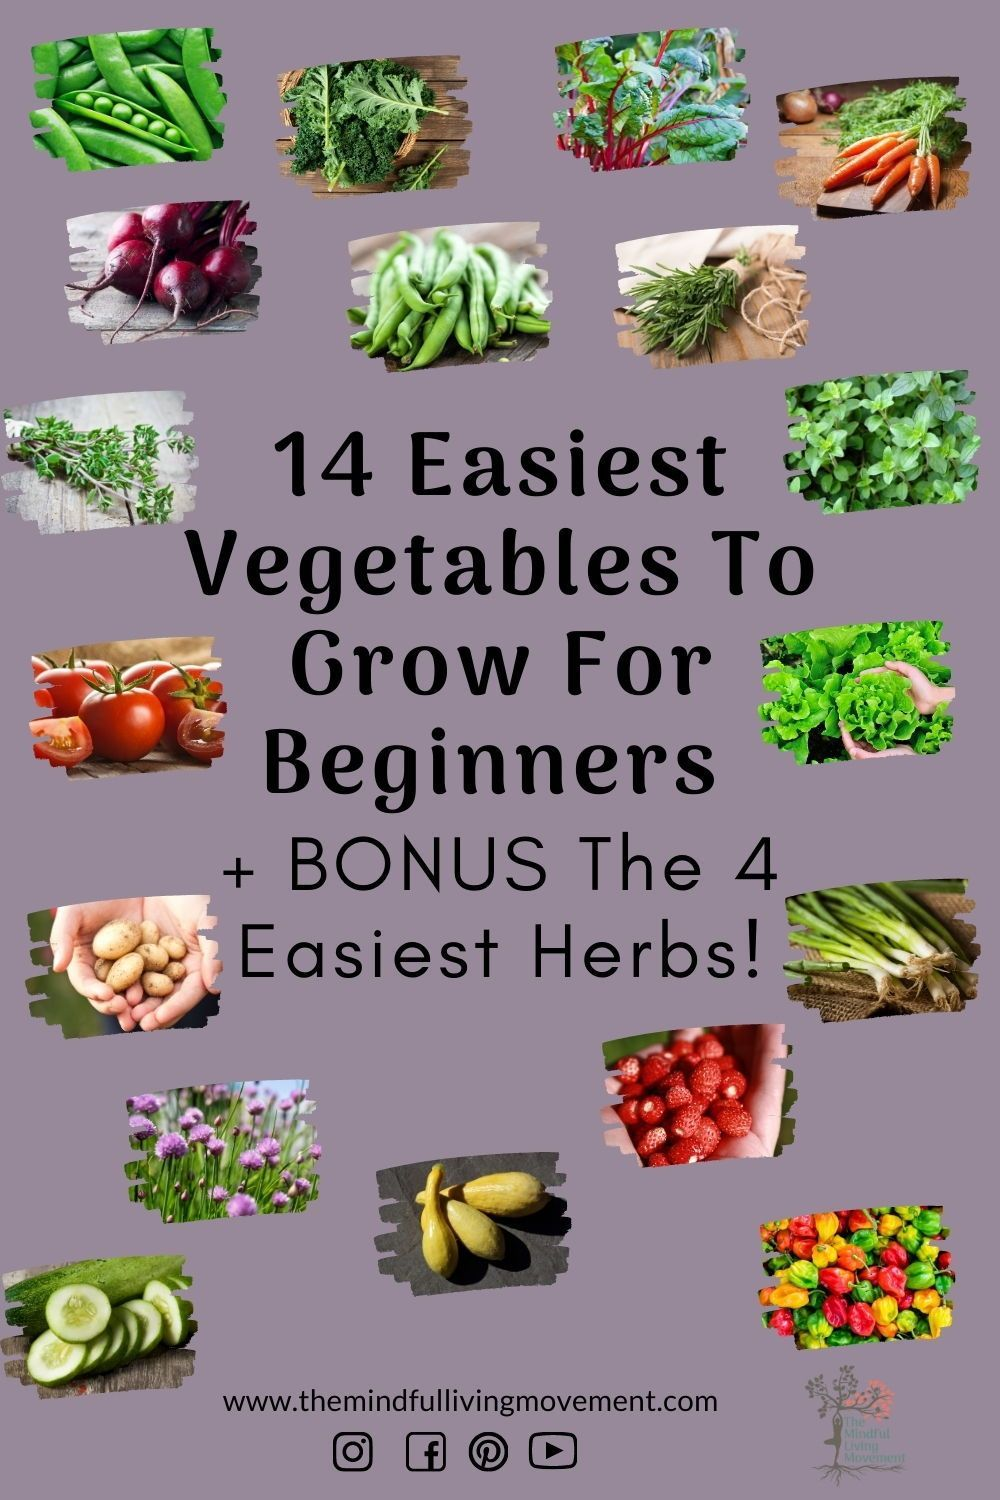 I narrowed it down to 14 vegetables and 4 herbs to give you a large selection of options to choose from to start your garden.#beginnergardener #urbangardening #growyourownfood #howtogarden #easygardening #gardentips #gardenideas #diygarden #canadiangardening #kidsgardening#gardenblog